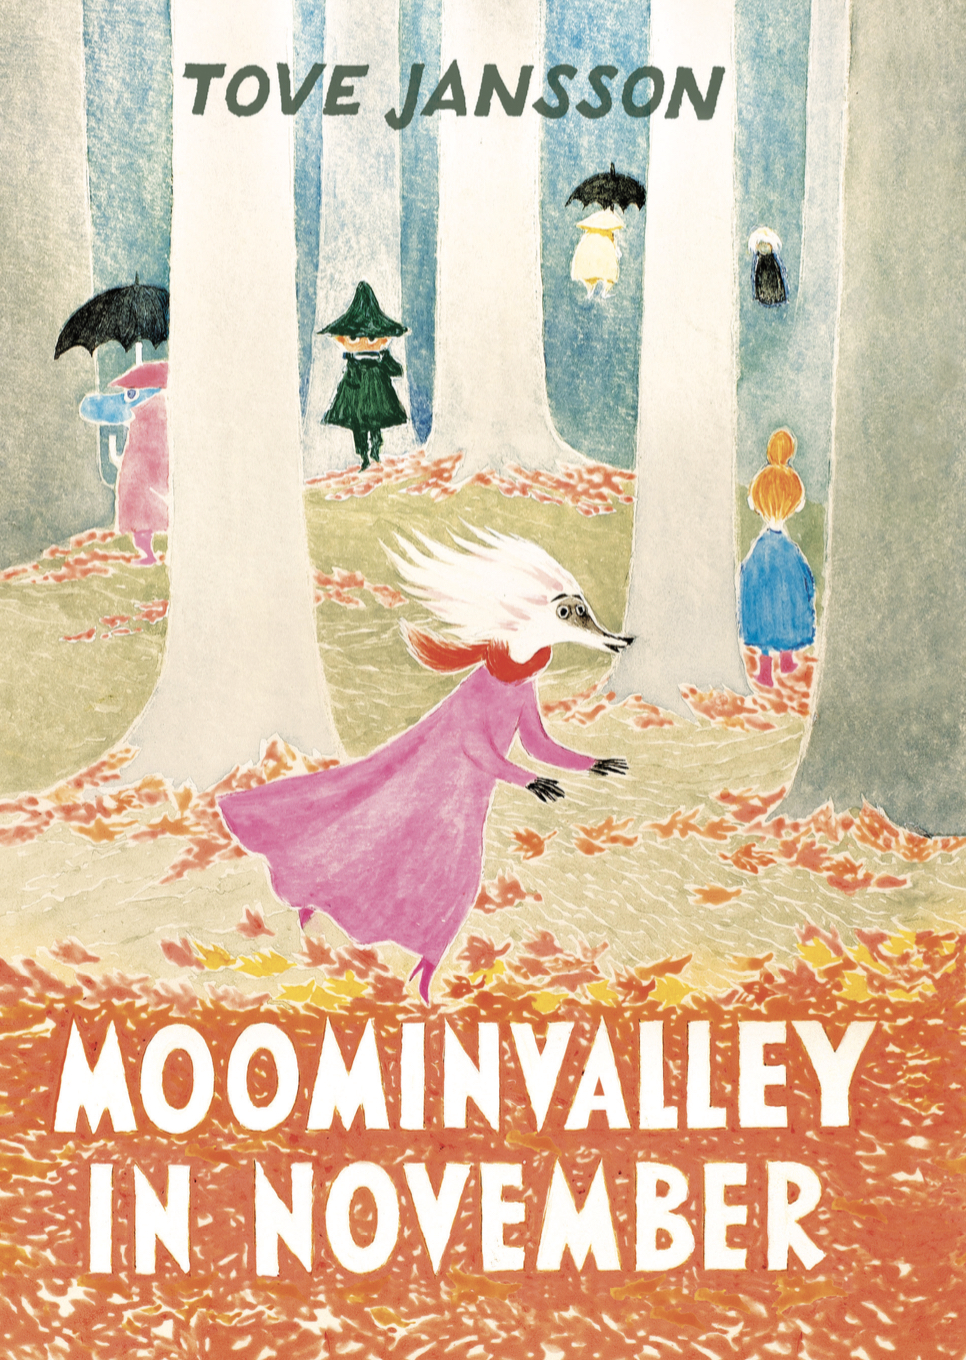 Tove Jansson Moomin Valley in November Sort of Books.jpg